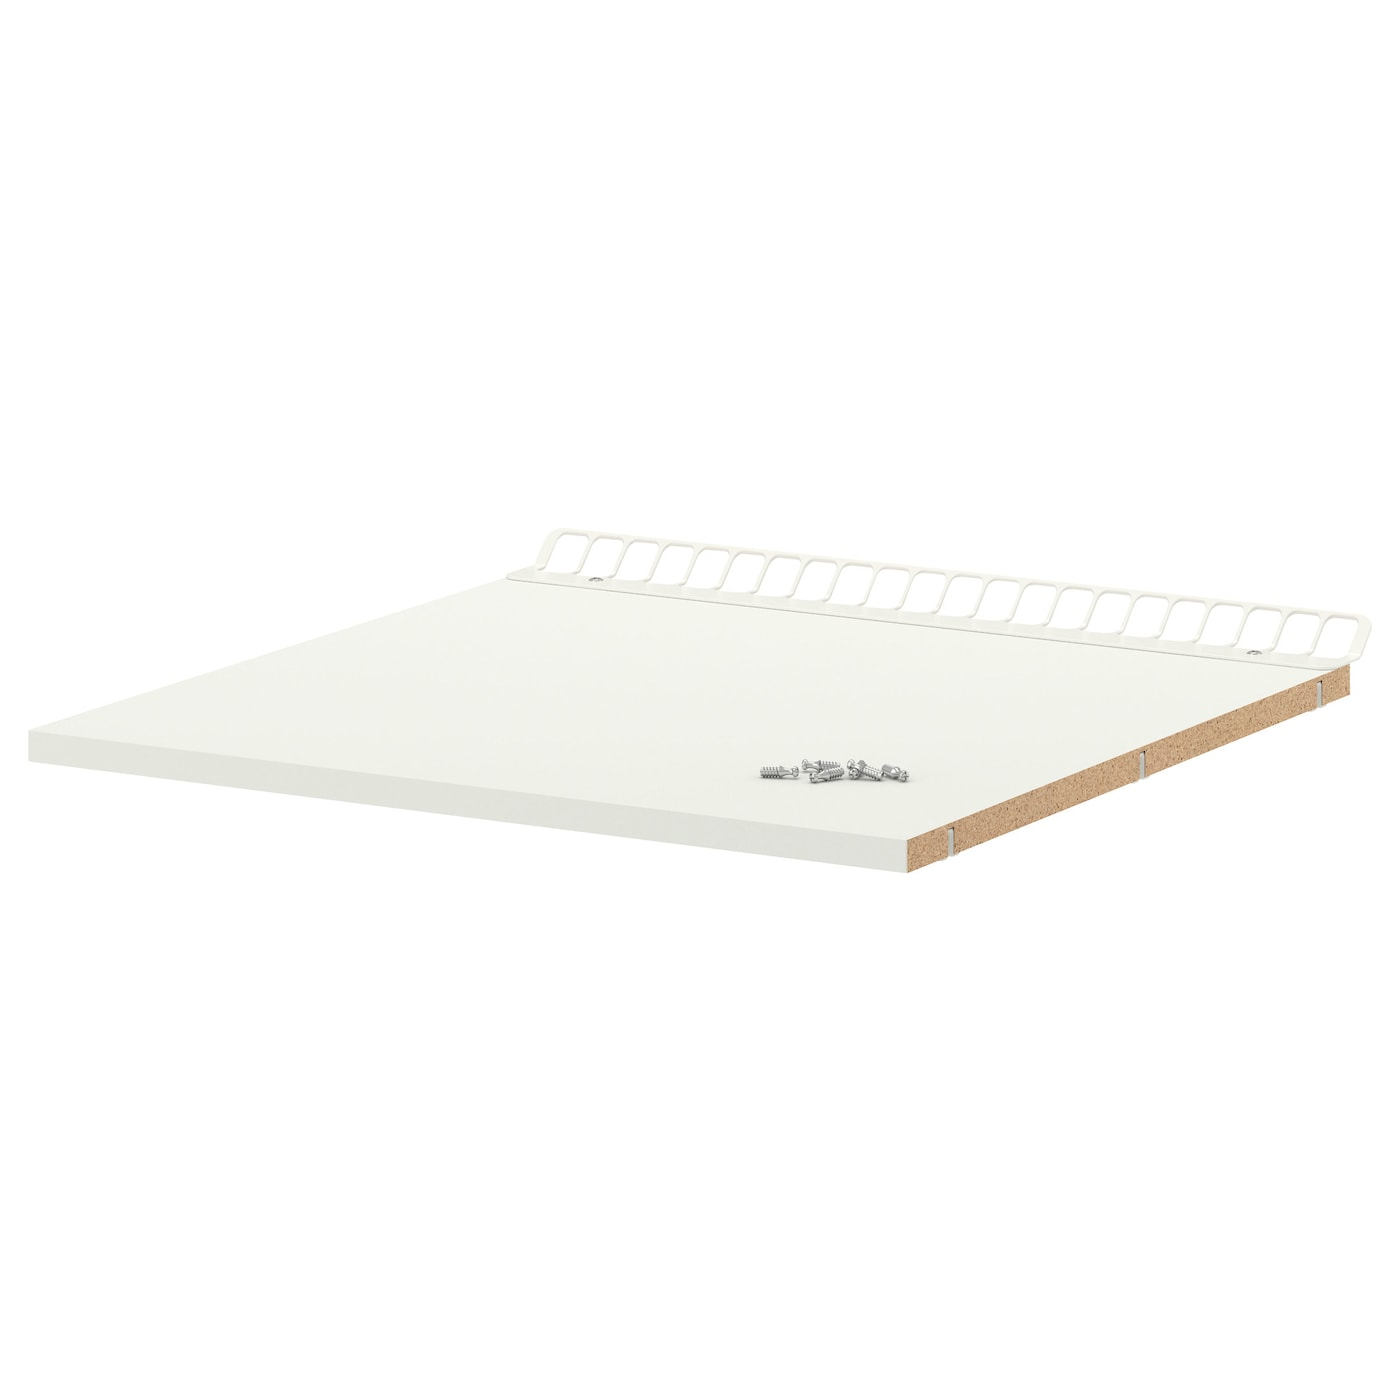 IKEA UTRUSTA fixed ventilated shelf